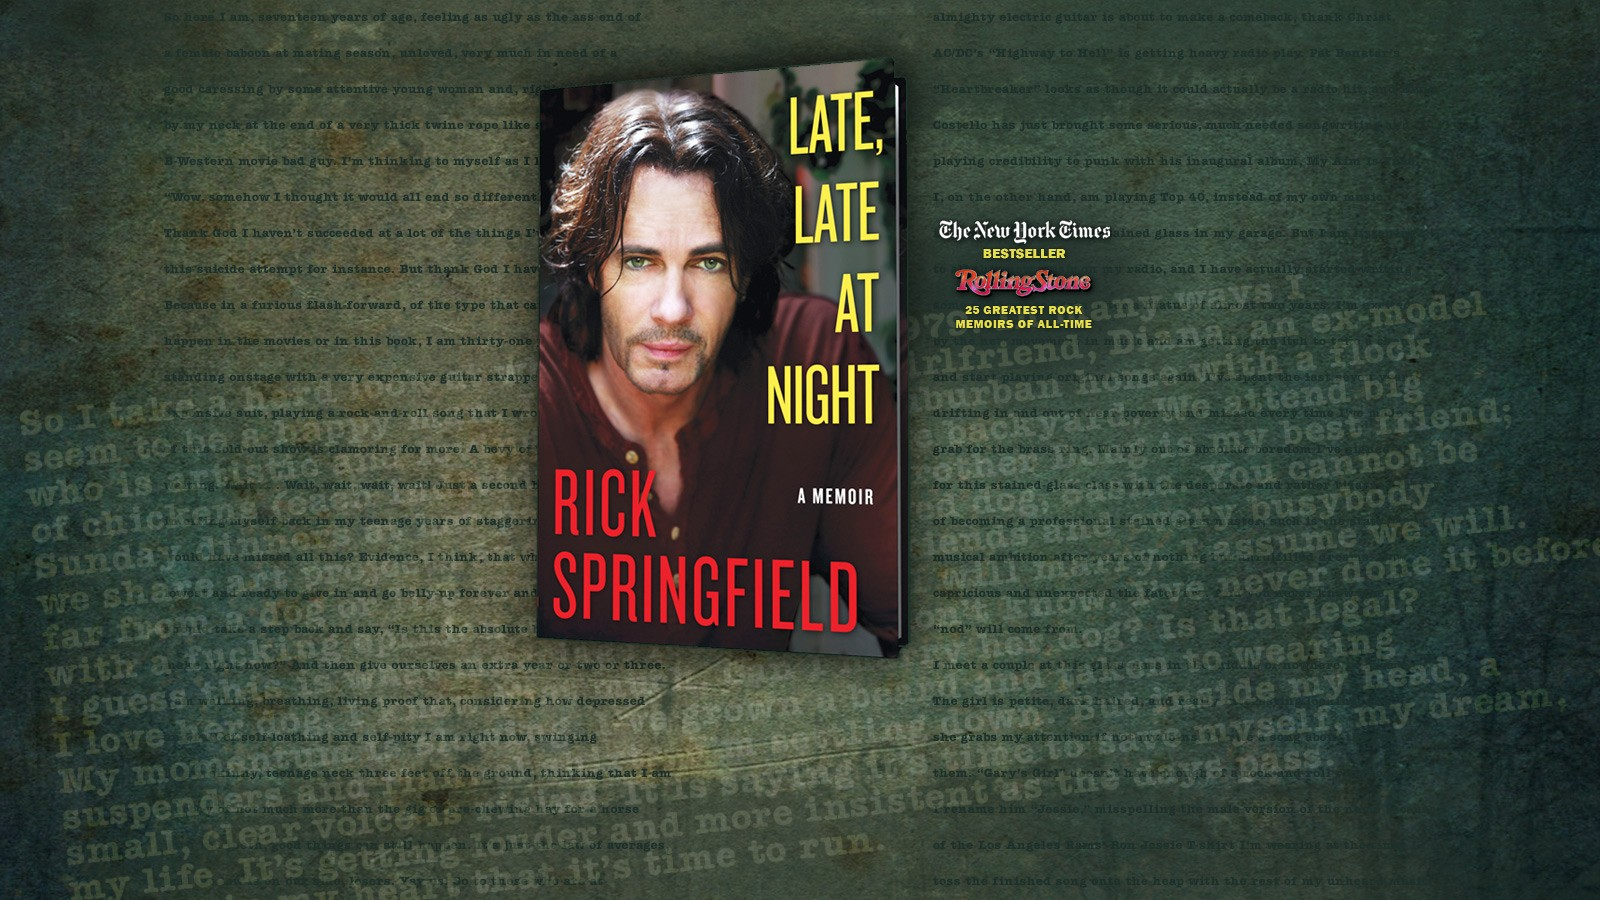 Rick Springfield - Late, Late, At Night